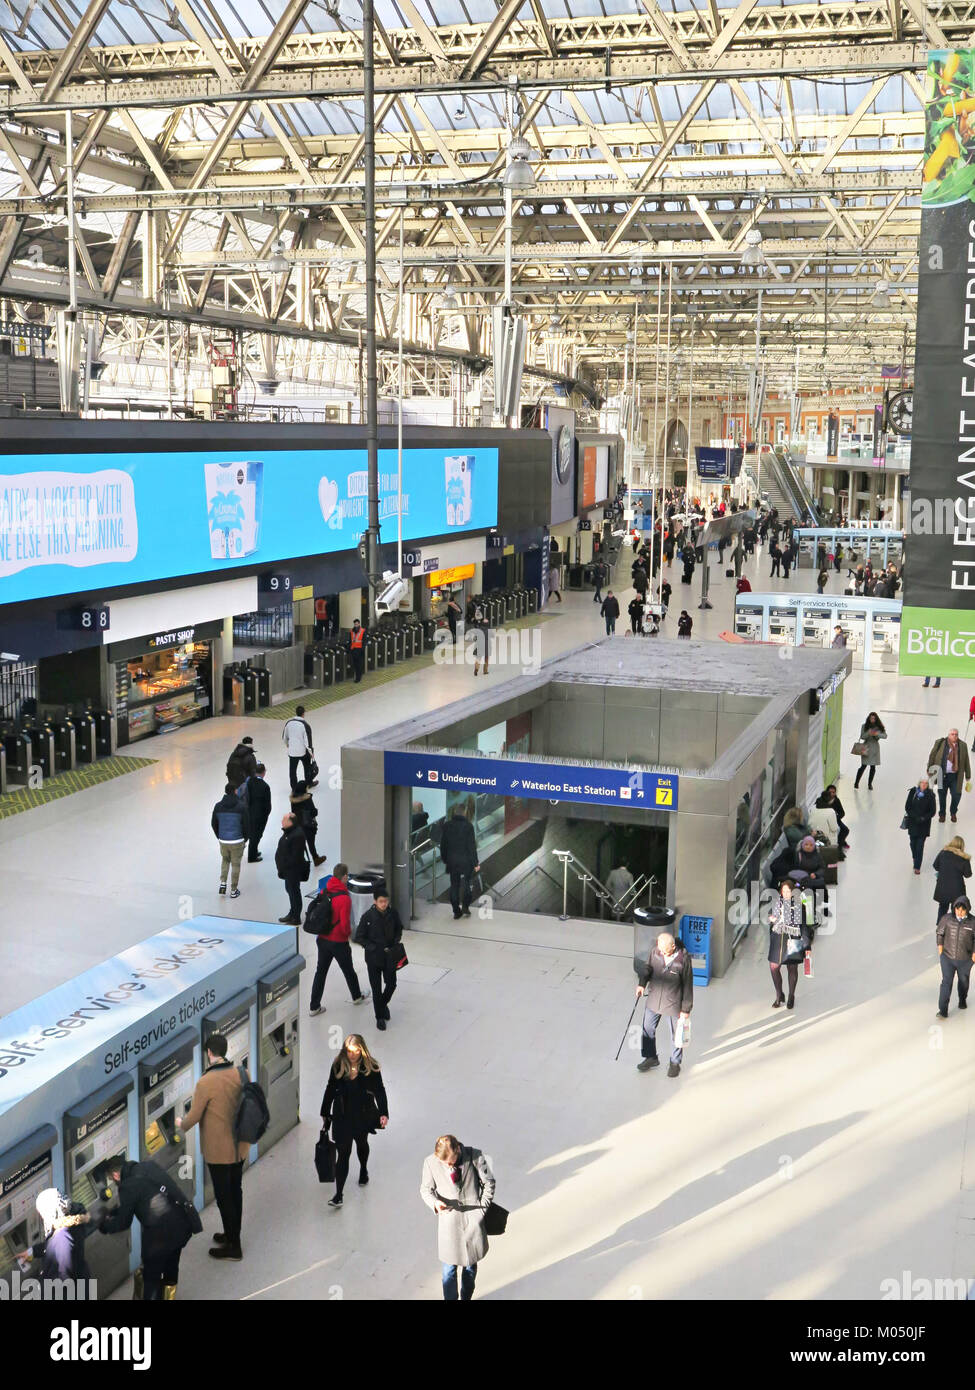 Waterloo Station, entrance to the the tube along side the trains, London britain - Stock Image